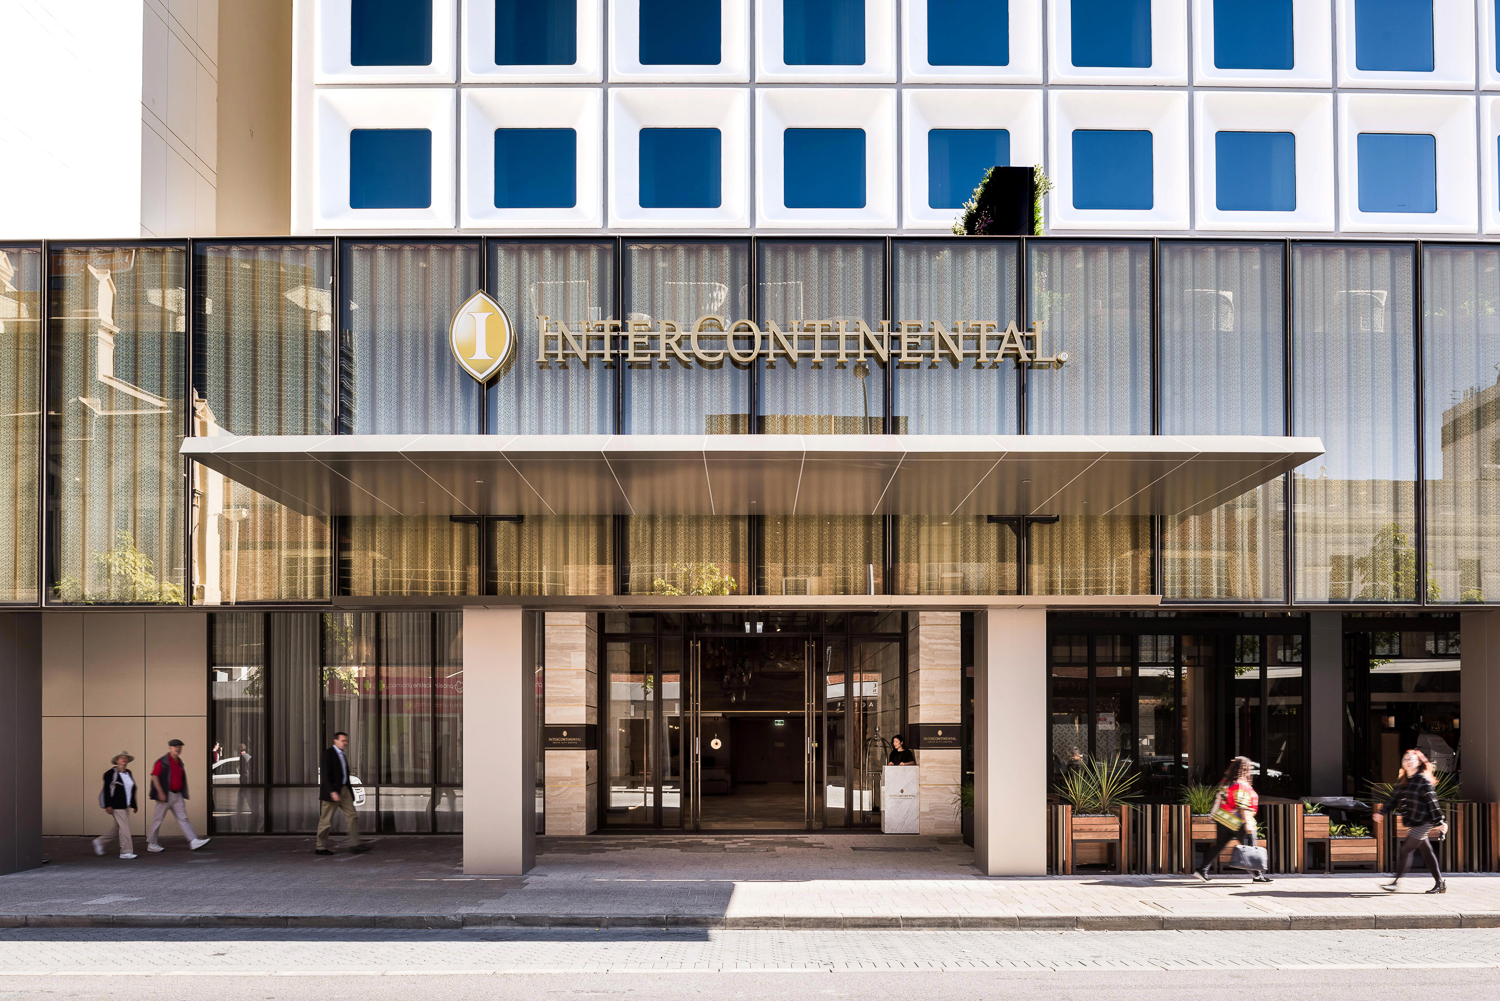 Intercontinental-85_LR.jpg